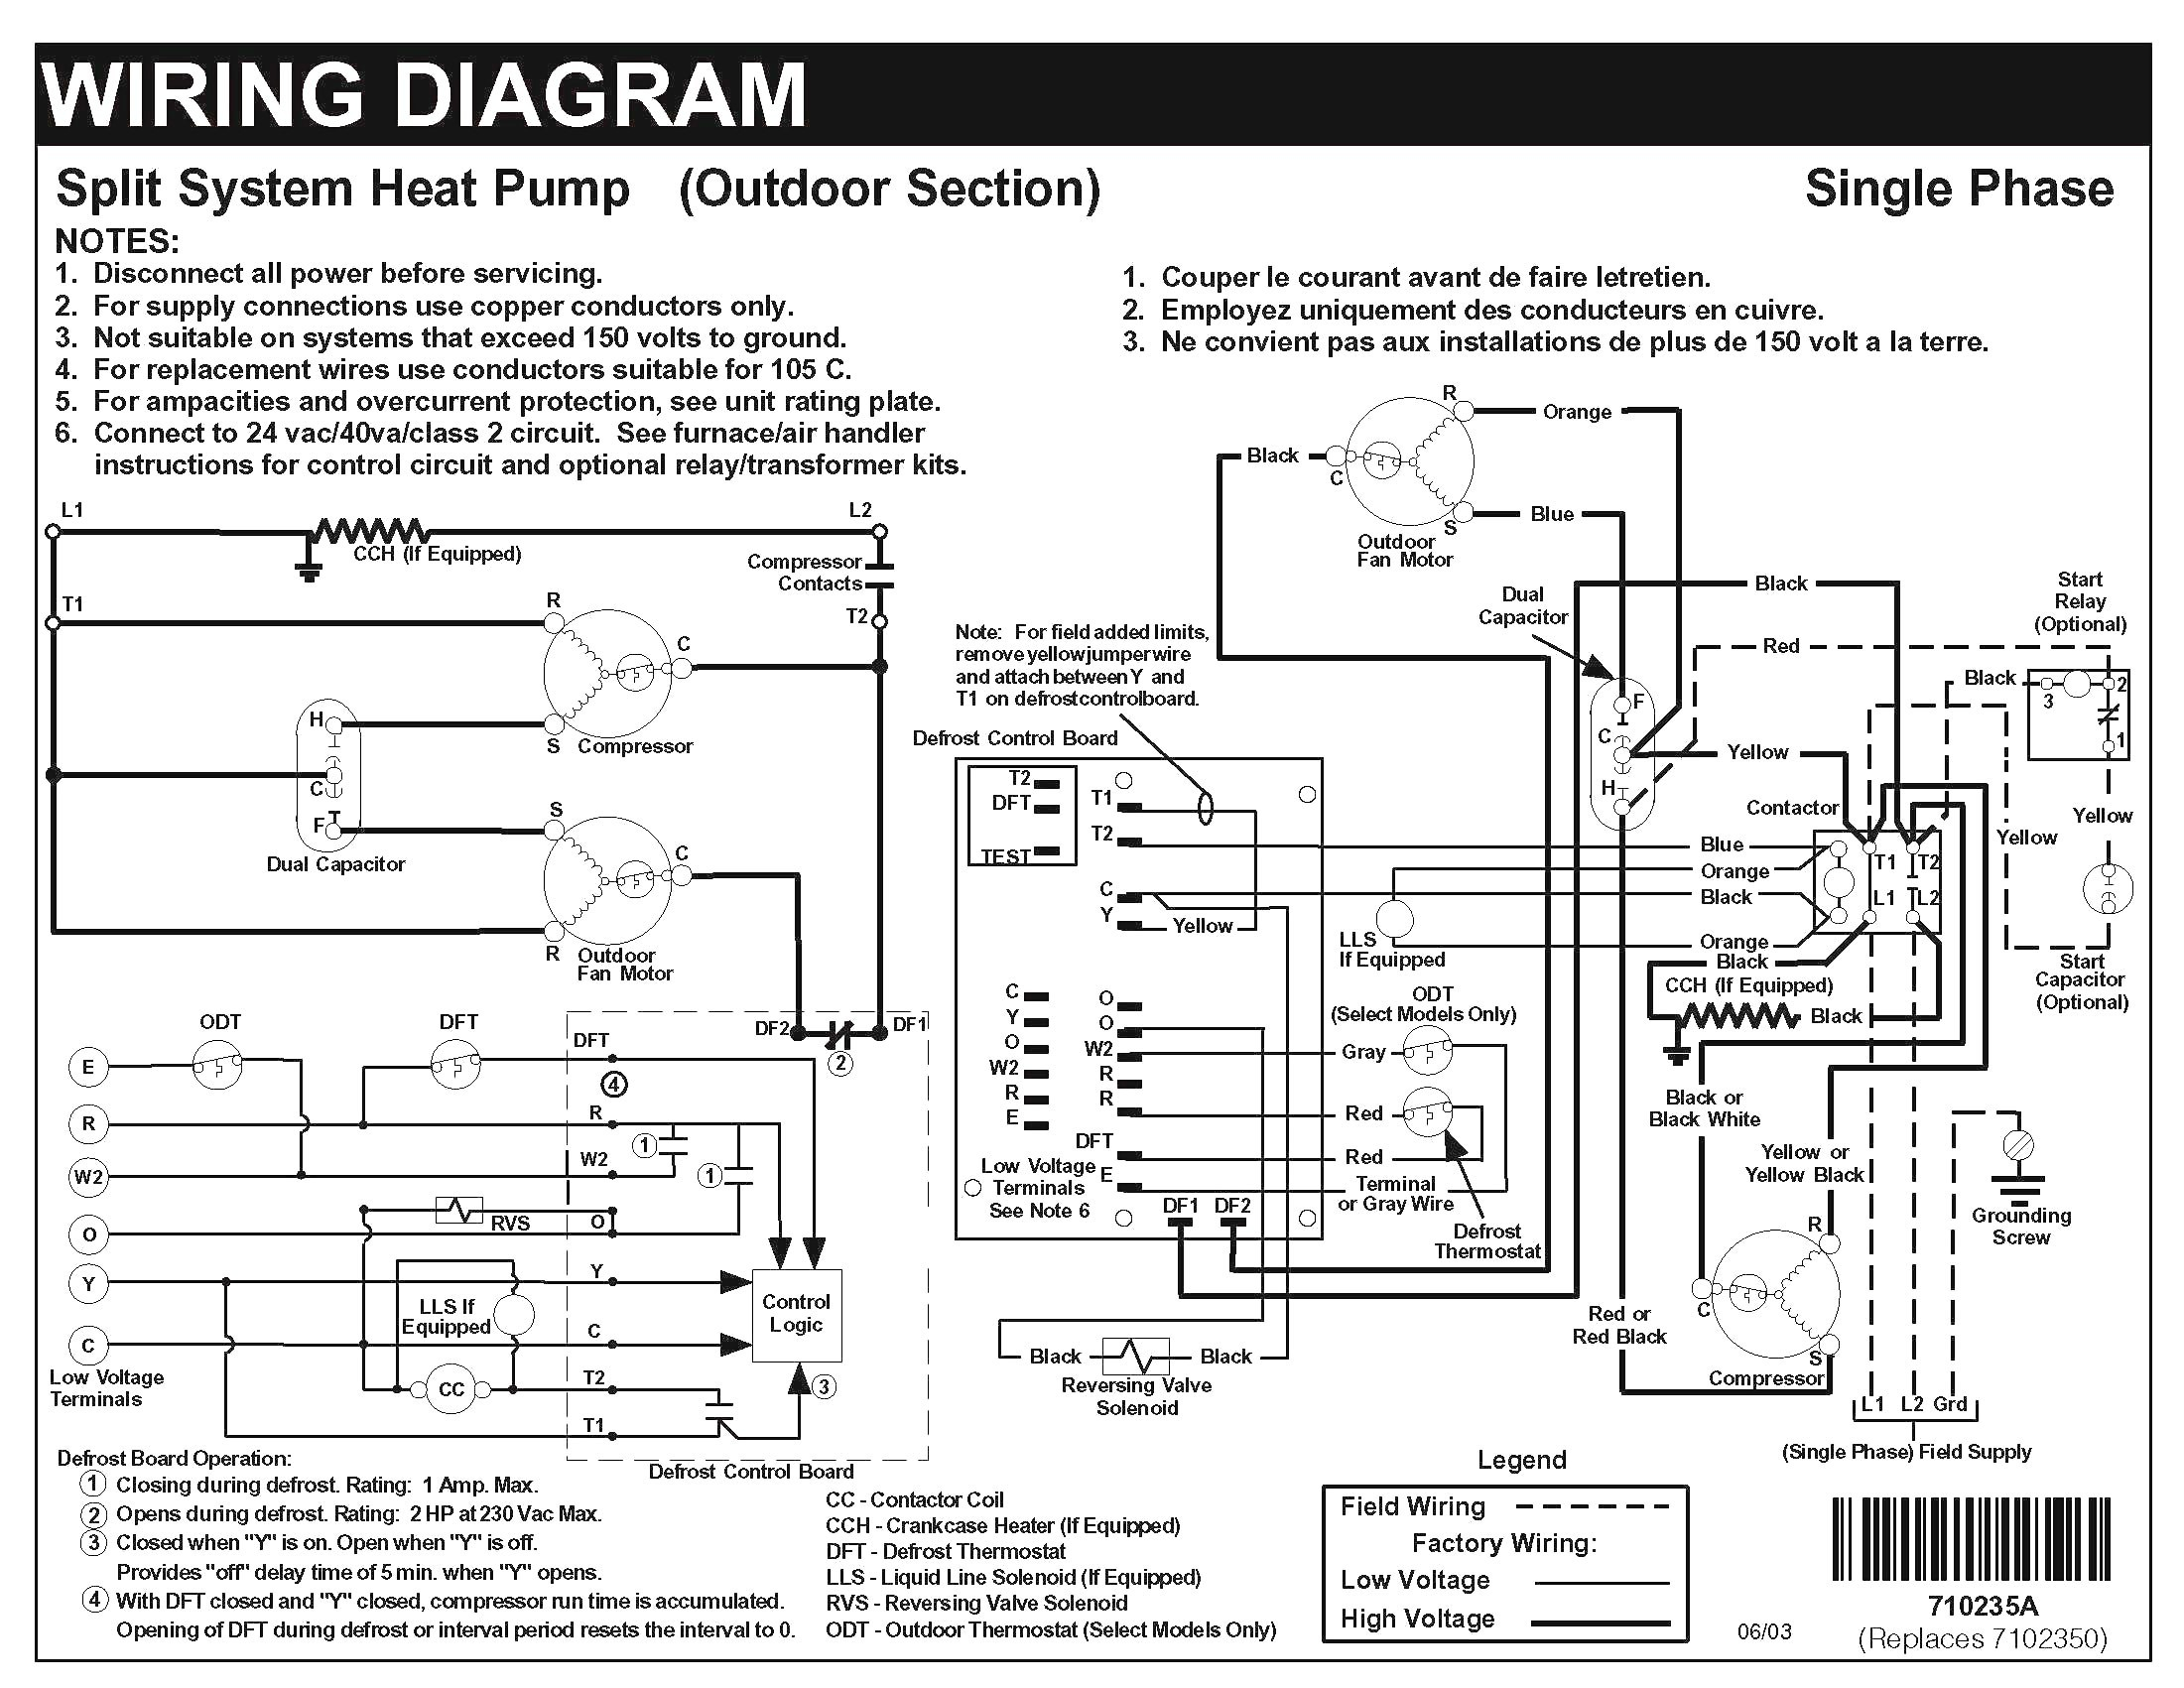 Also Whole House Wiring Diagrams Moreover Whole House Wiring Diagrams